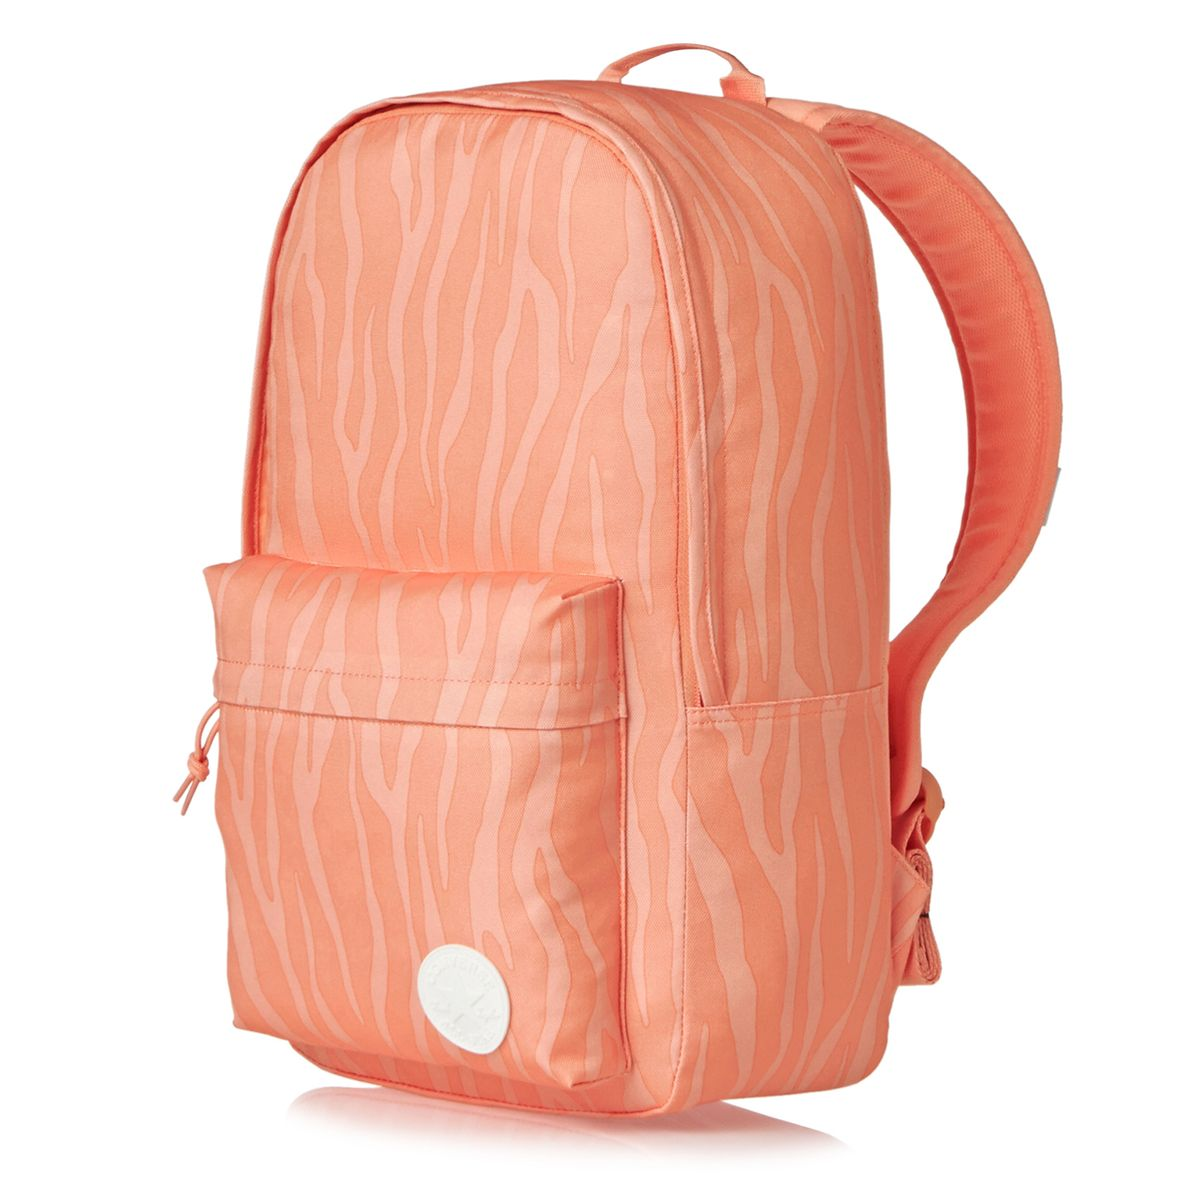 converse-backpacks-converse-edc-poly-backpack-zebra-sunset-glow